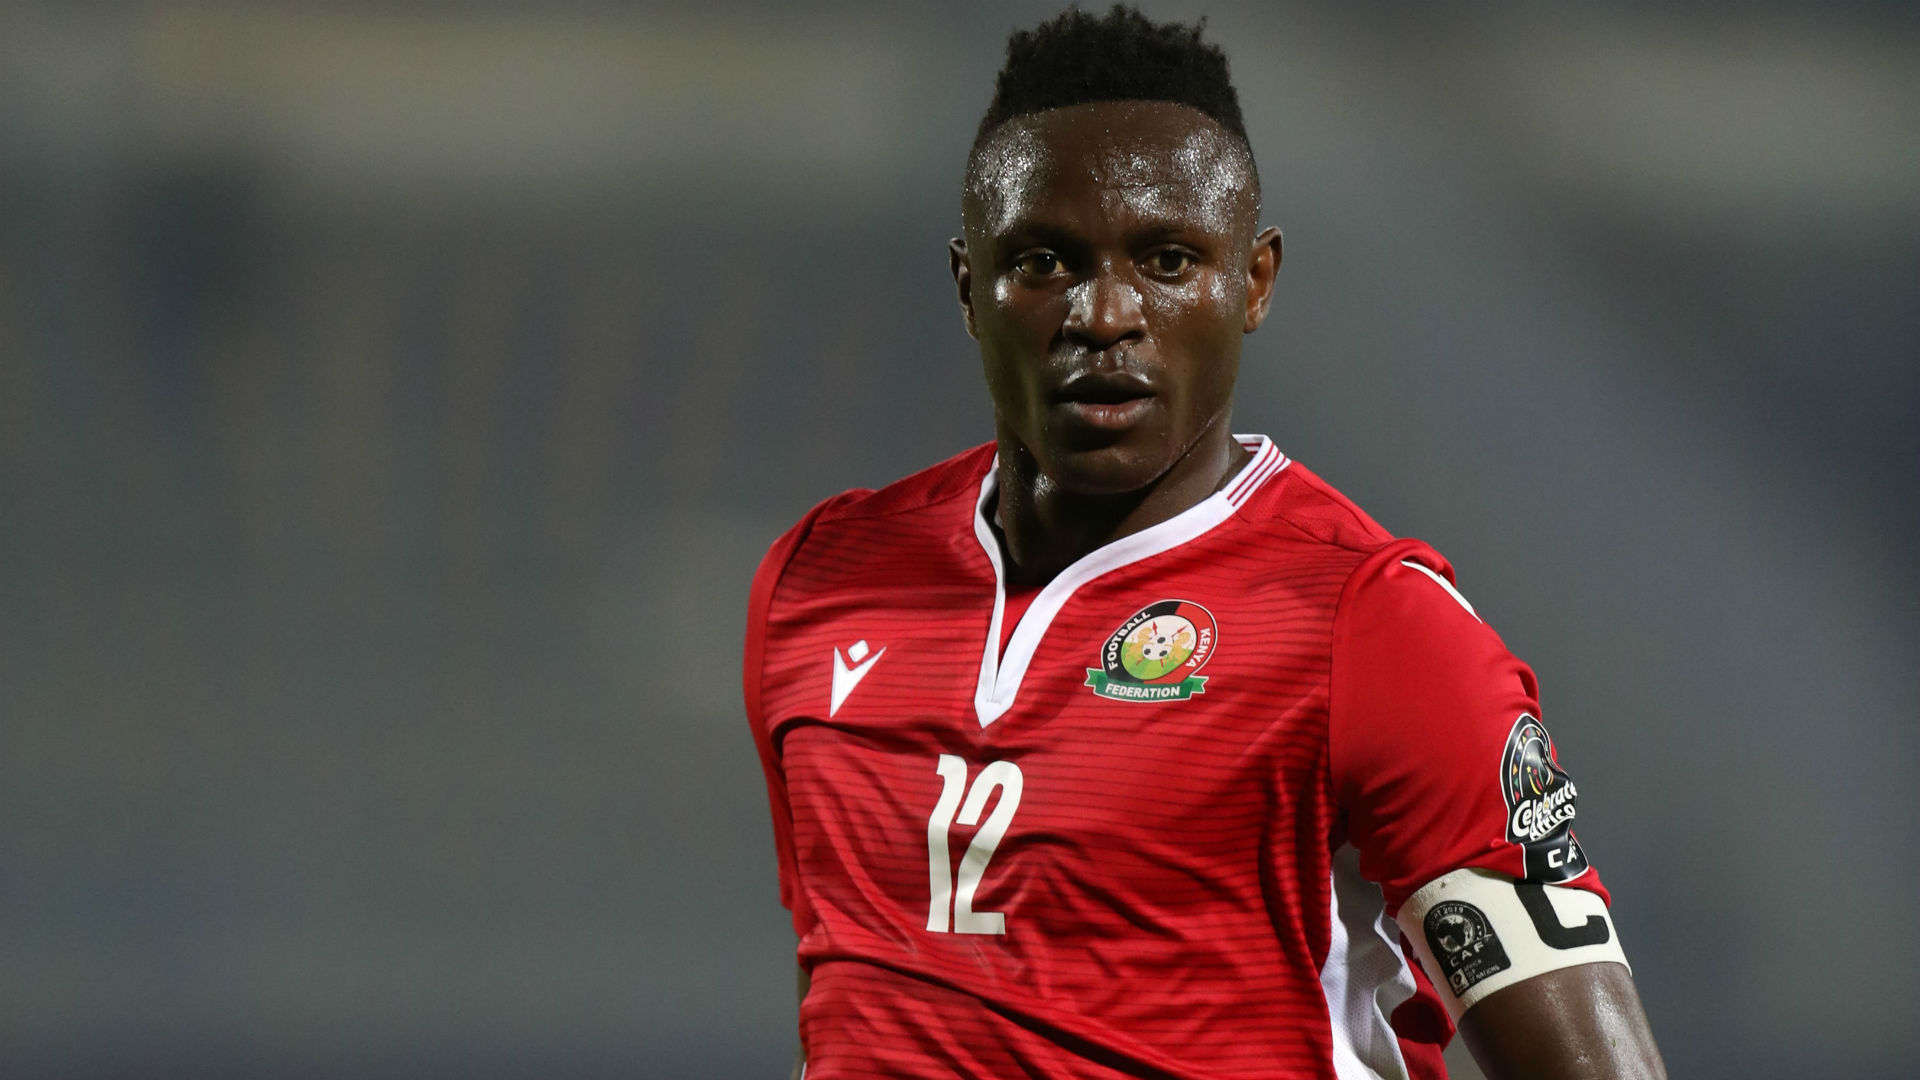 Afcon 2019: Kenya will place all focus and efforts against Tanzania – Wanyama